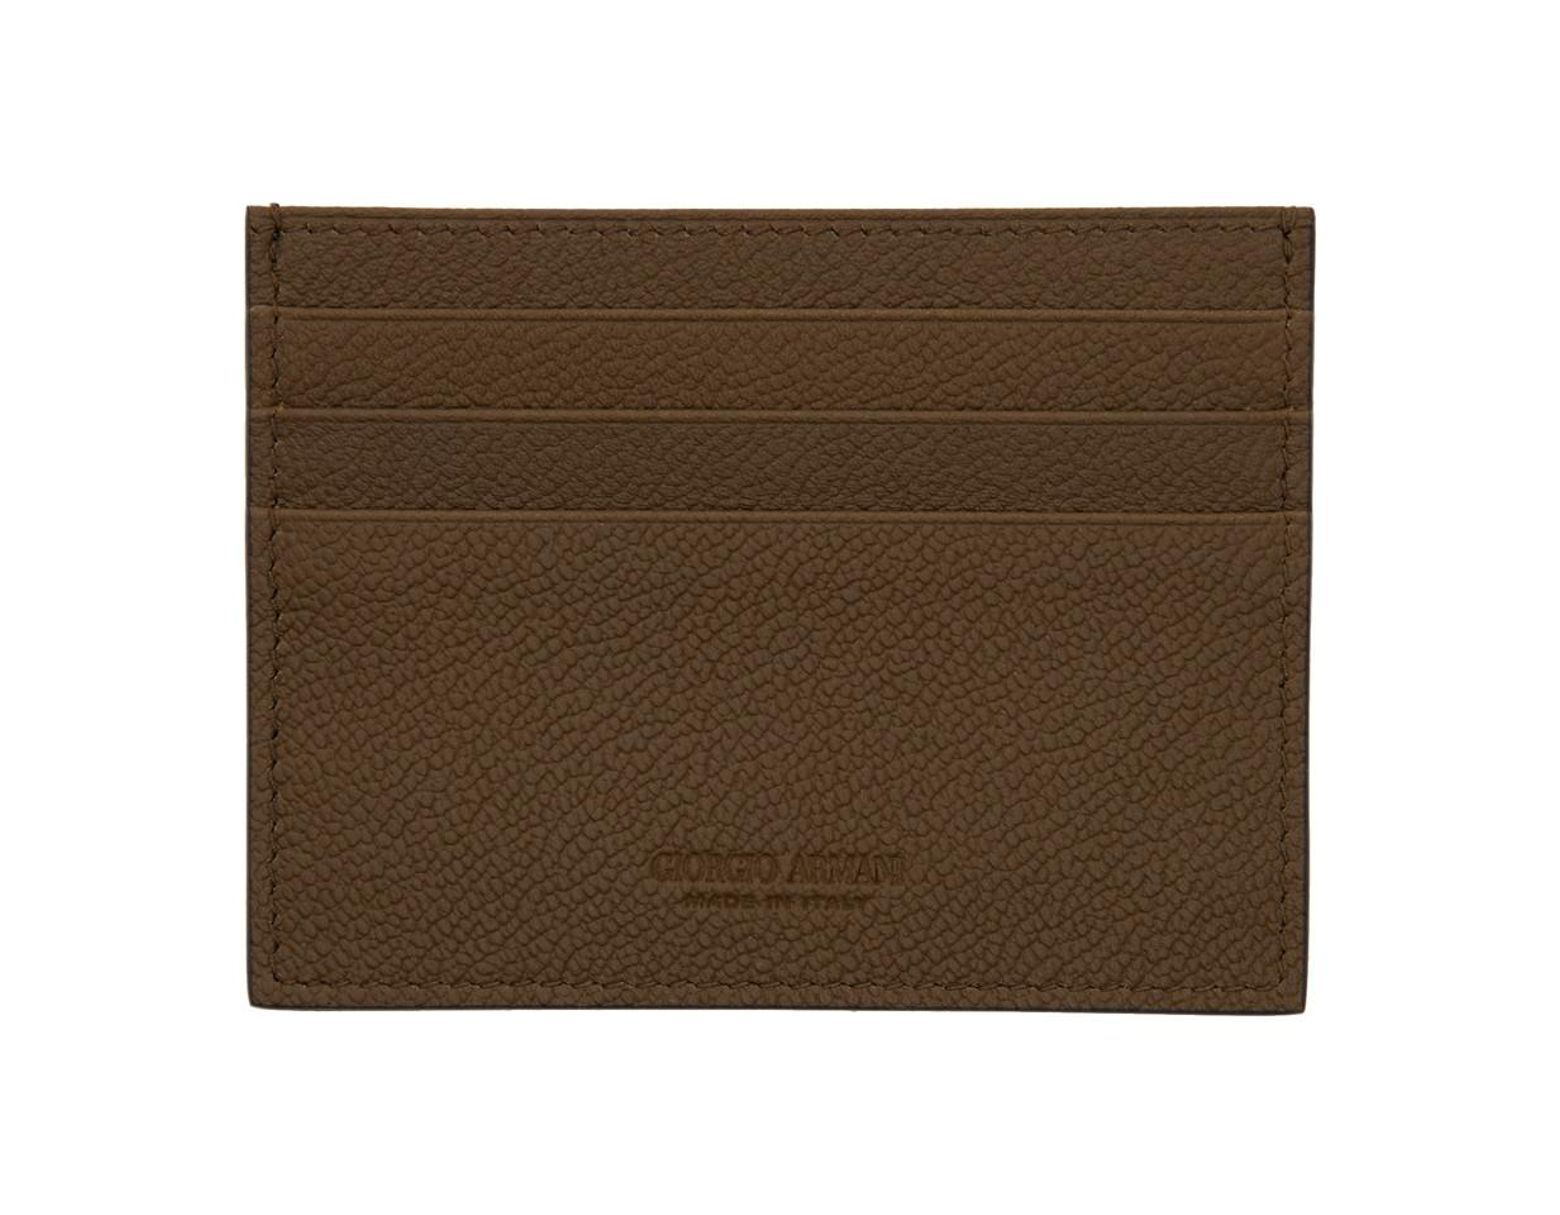 d0e4a3191c Giorgio Armani Brown Leather Card Holder in Brown for Men - Lyst